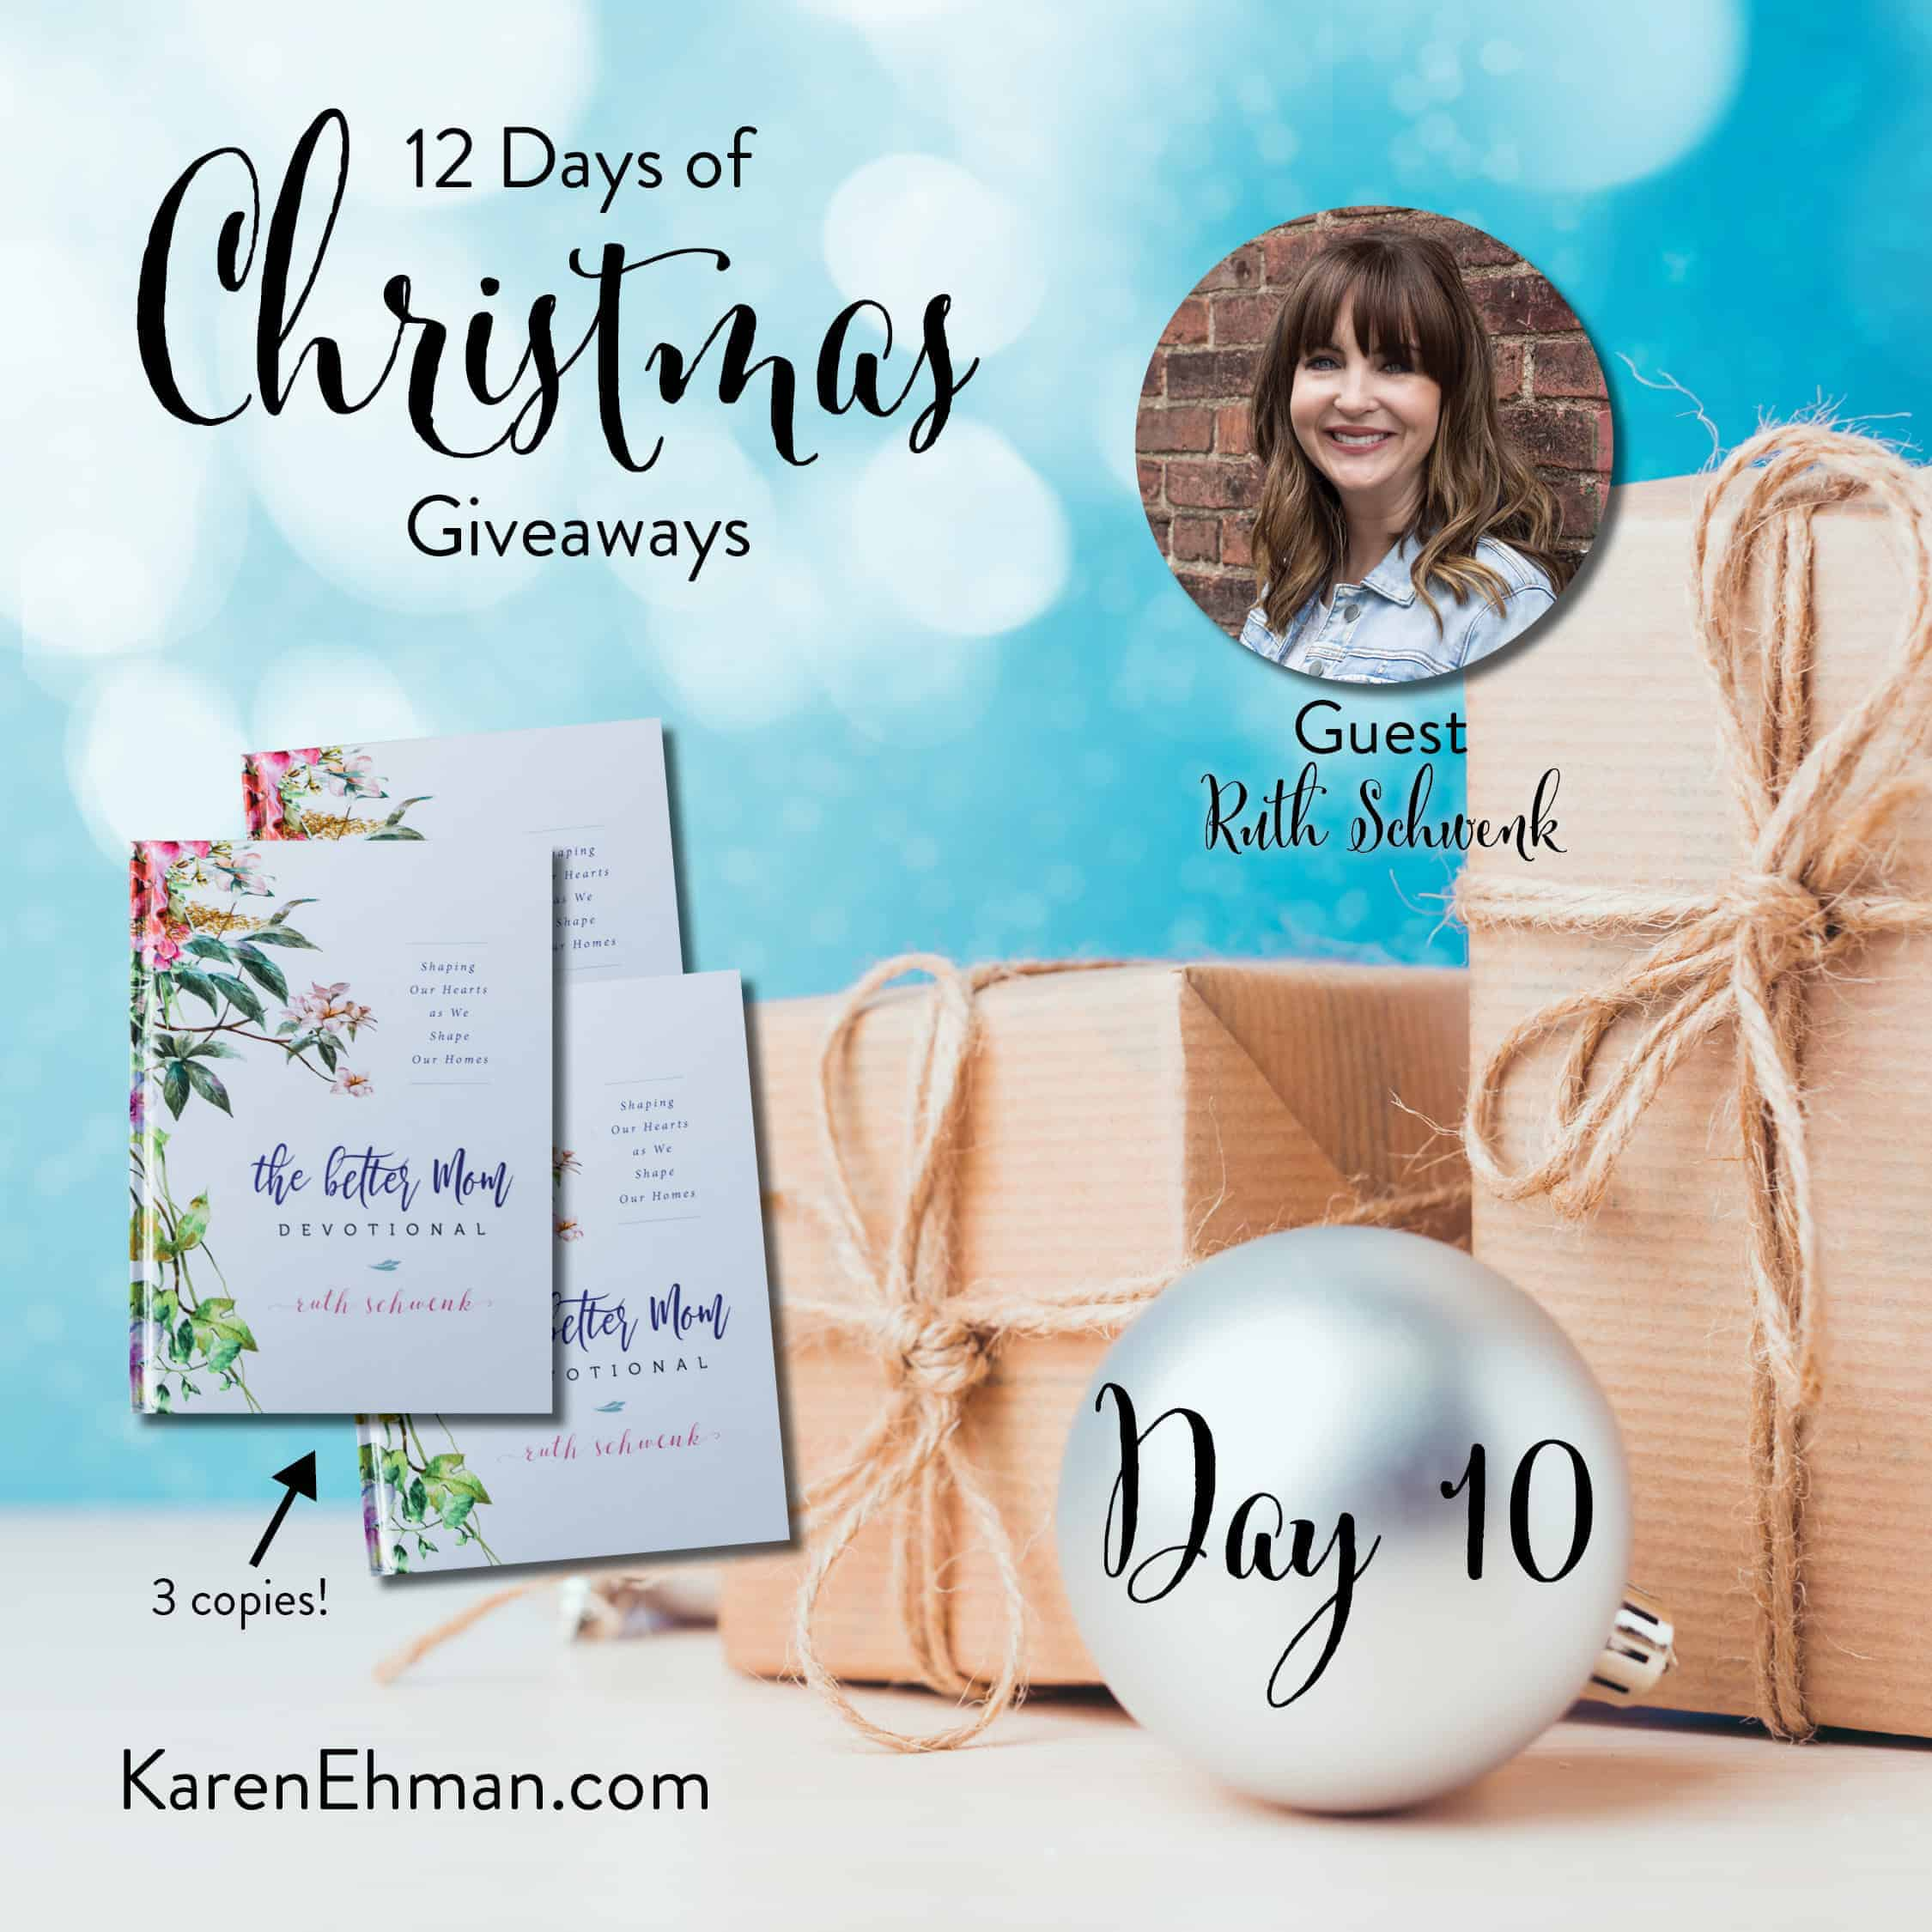 Day 10 of 12 Days of Christmas Giveaways (with Ruth Schwenk)